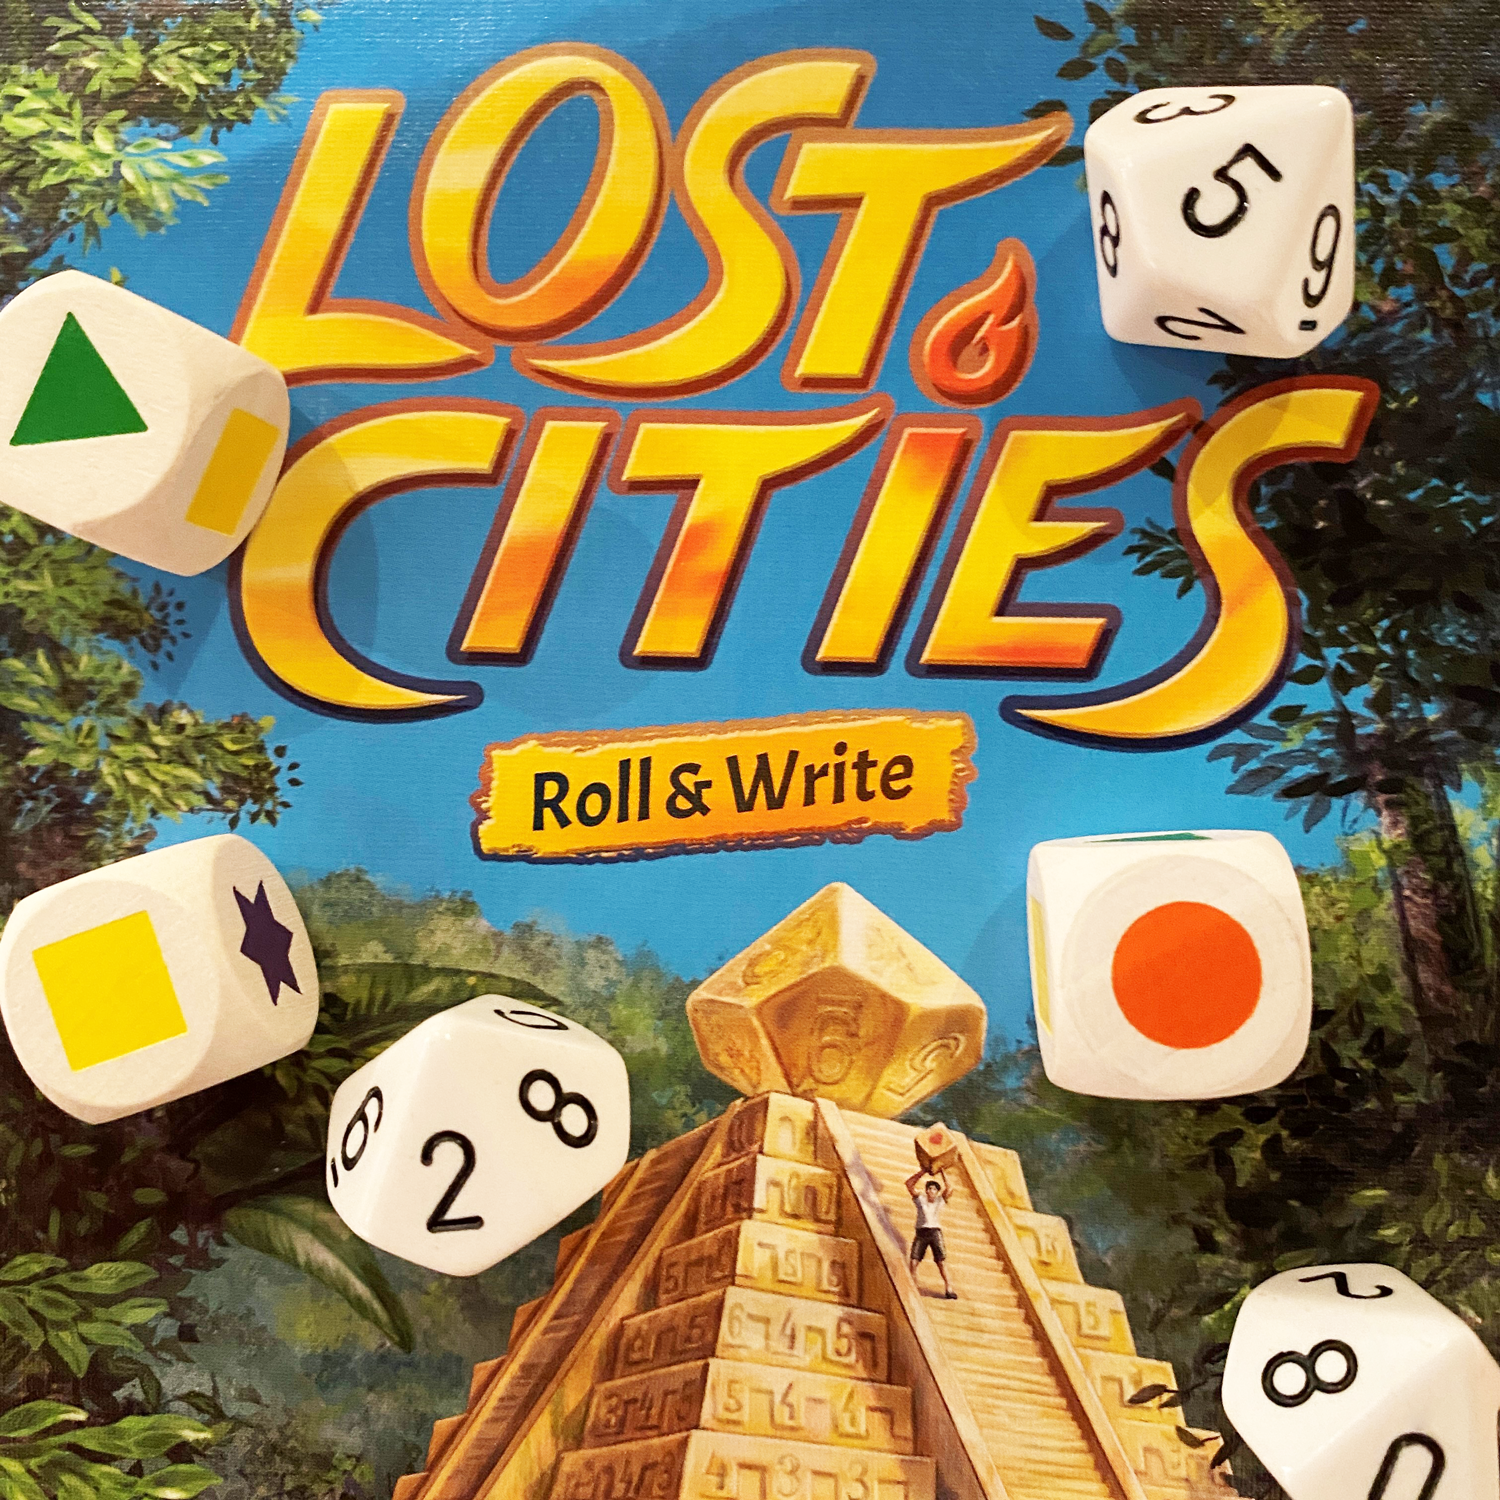 Lost-Cities-Roll-&-Write-Dice